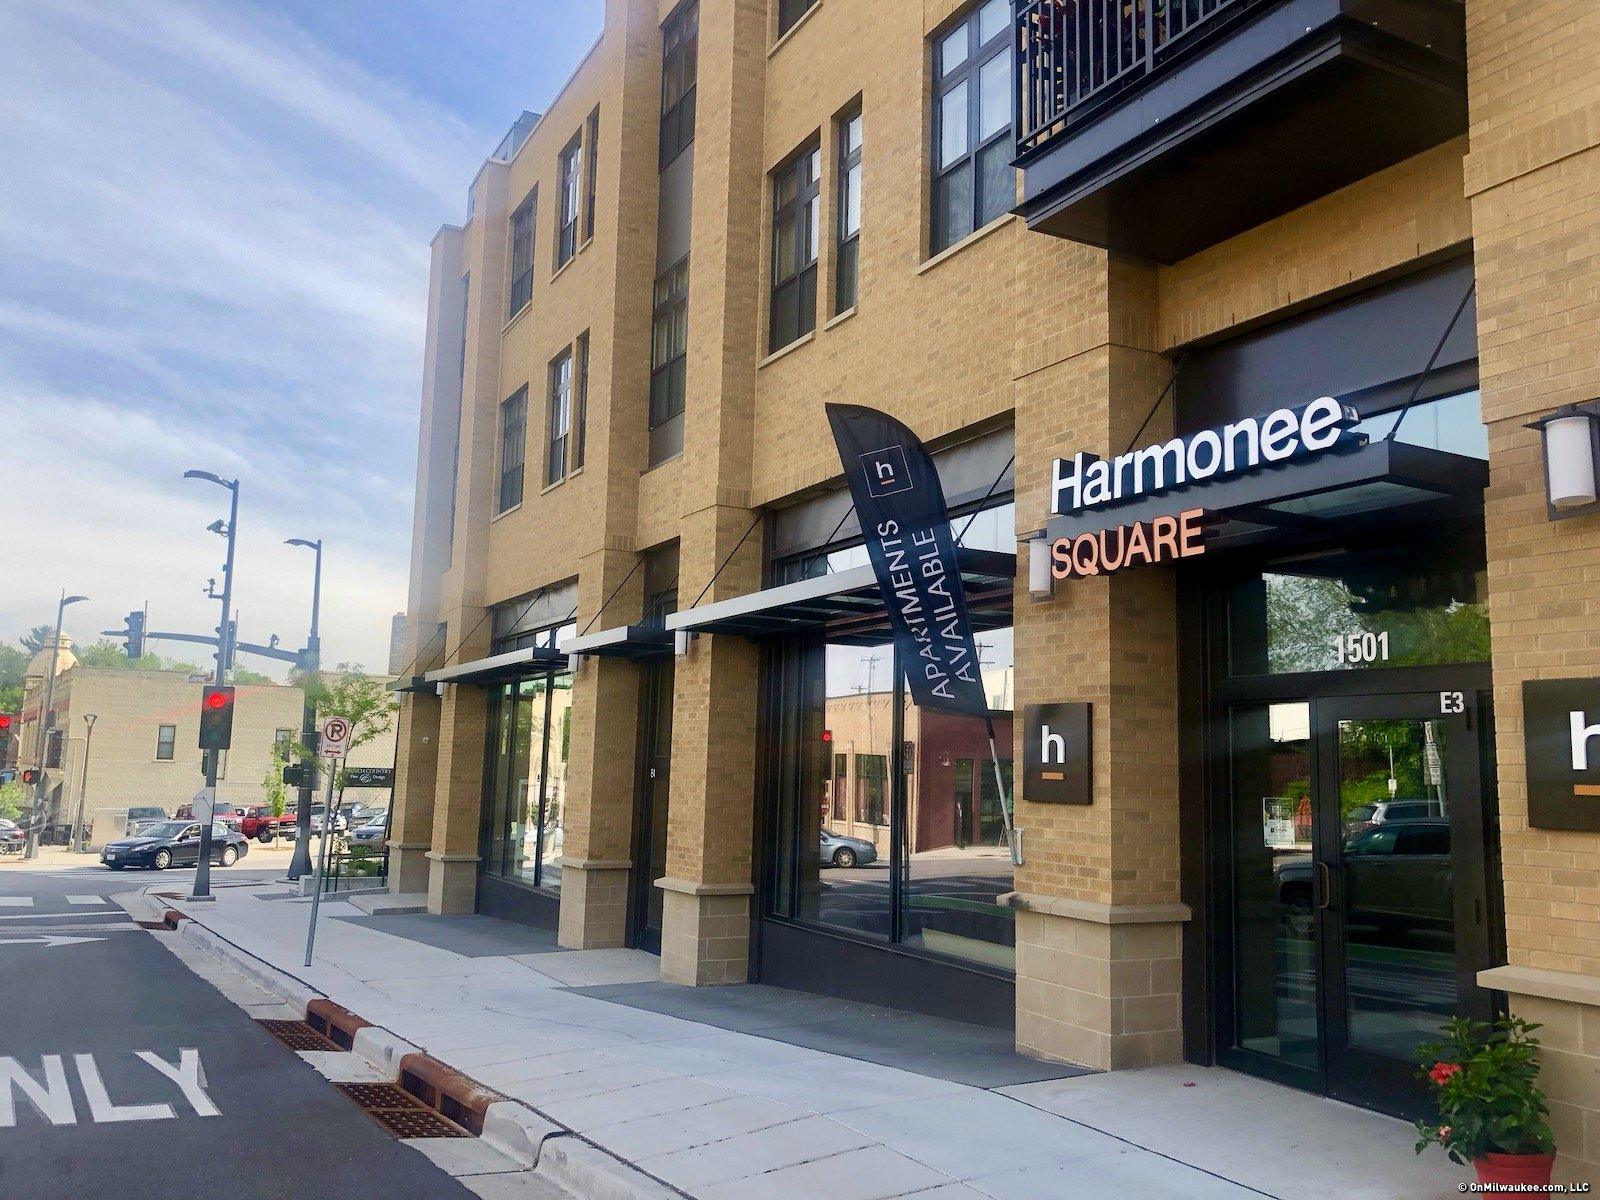 Black Twig Bakery slated for retail space at Harmonee Square